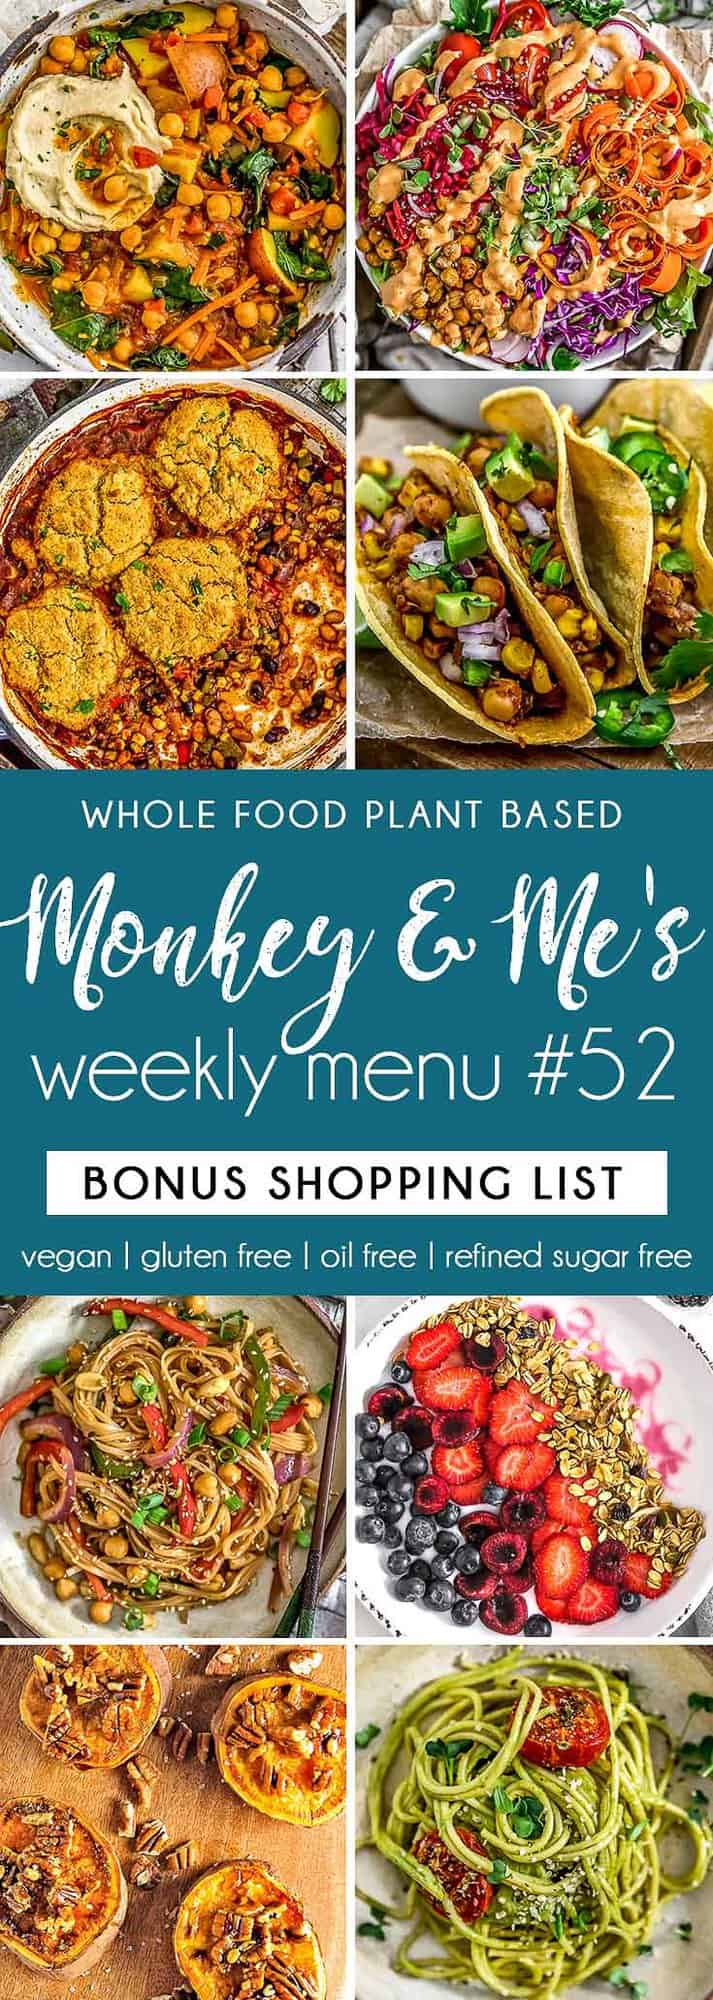 Monkey and Me's Menu 52 featuring 8 recipes